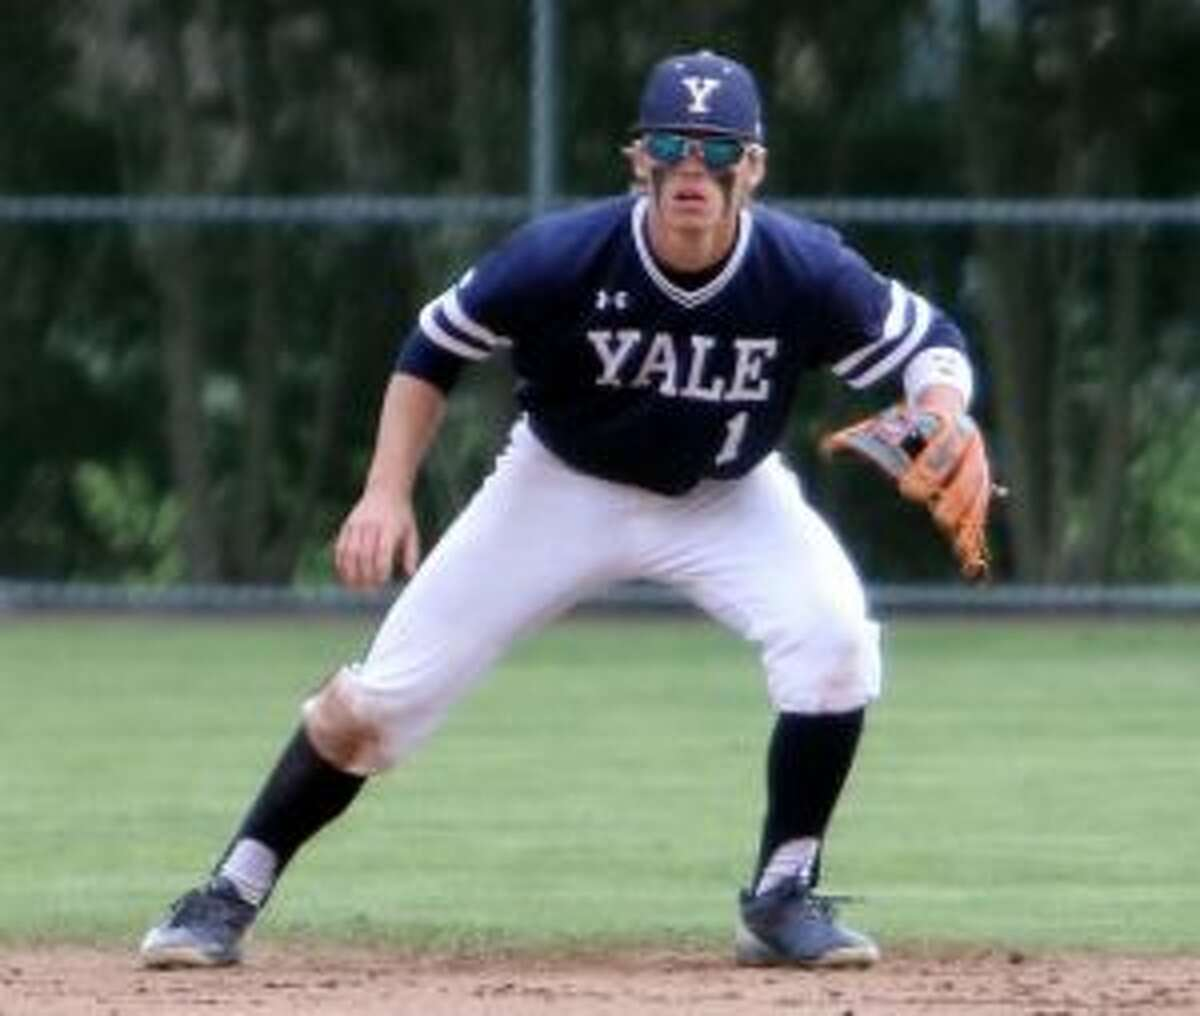 Simon Whiteman is the Ivy League Player of the Week. - Yale University photo